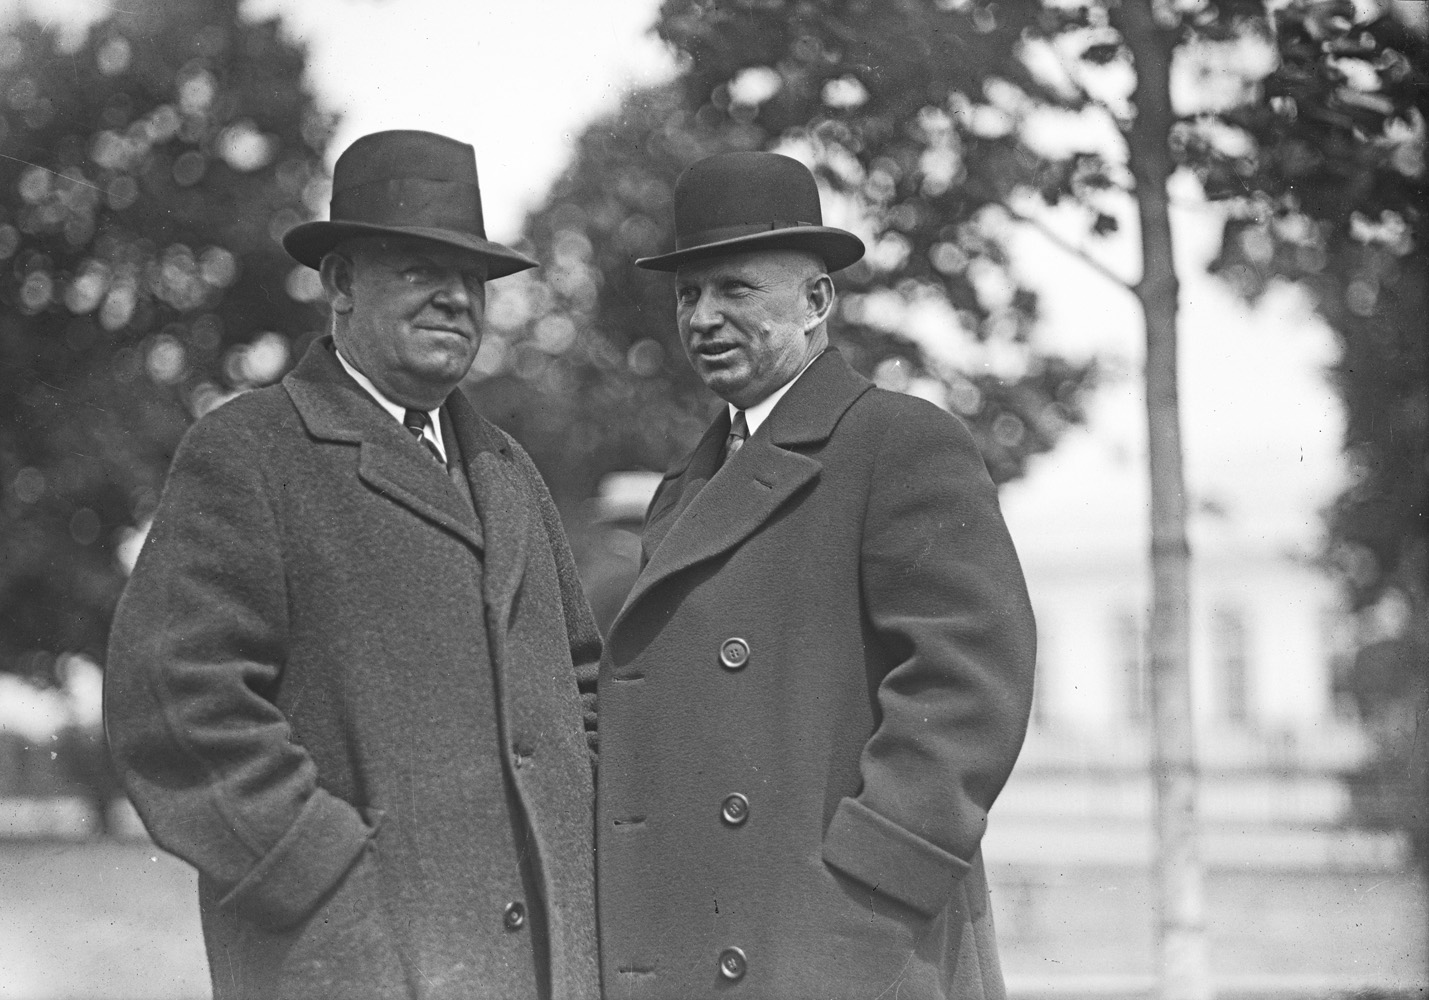 Robert A. Smith and Howard Oots in an undated photograph (Keeneland Library Cook Collection)